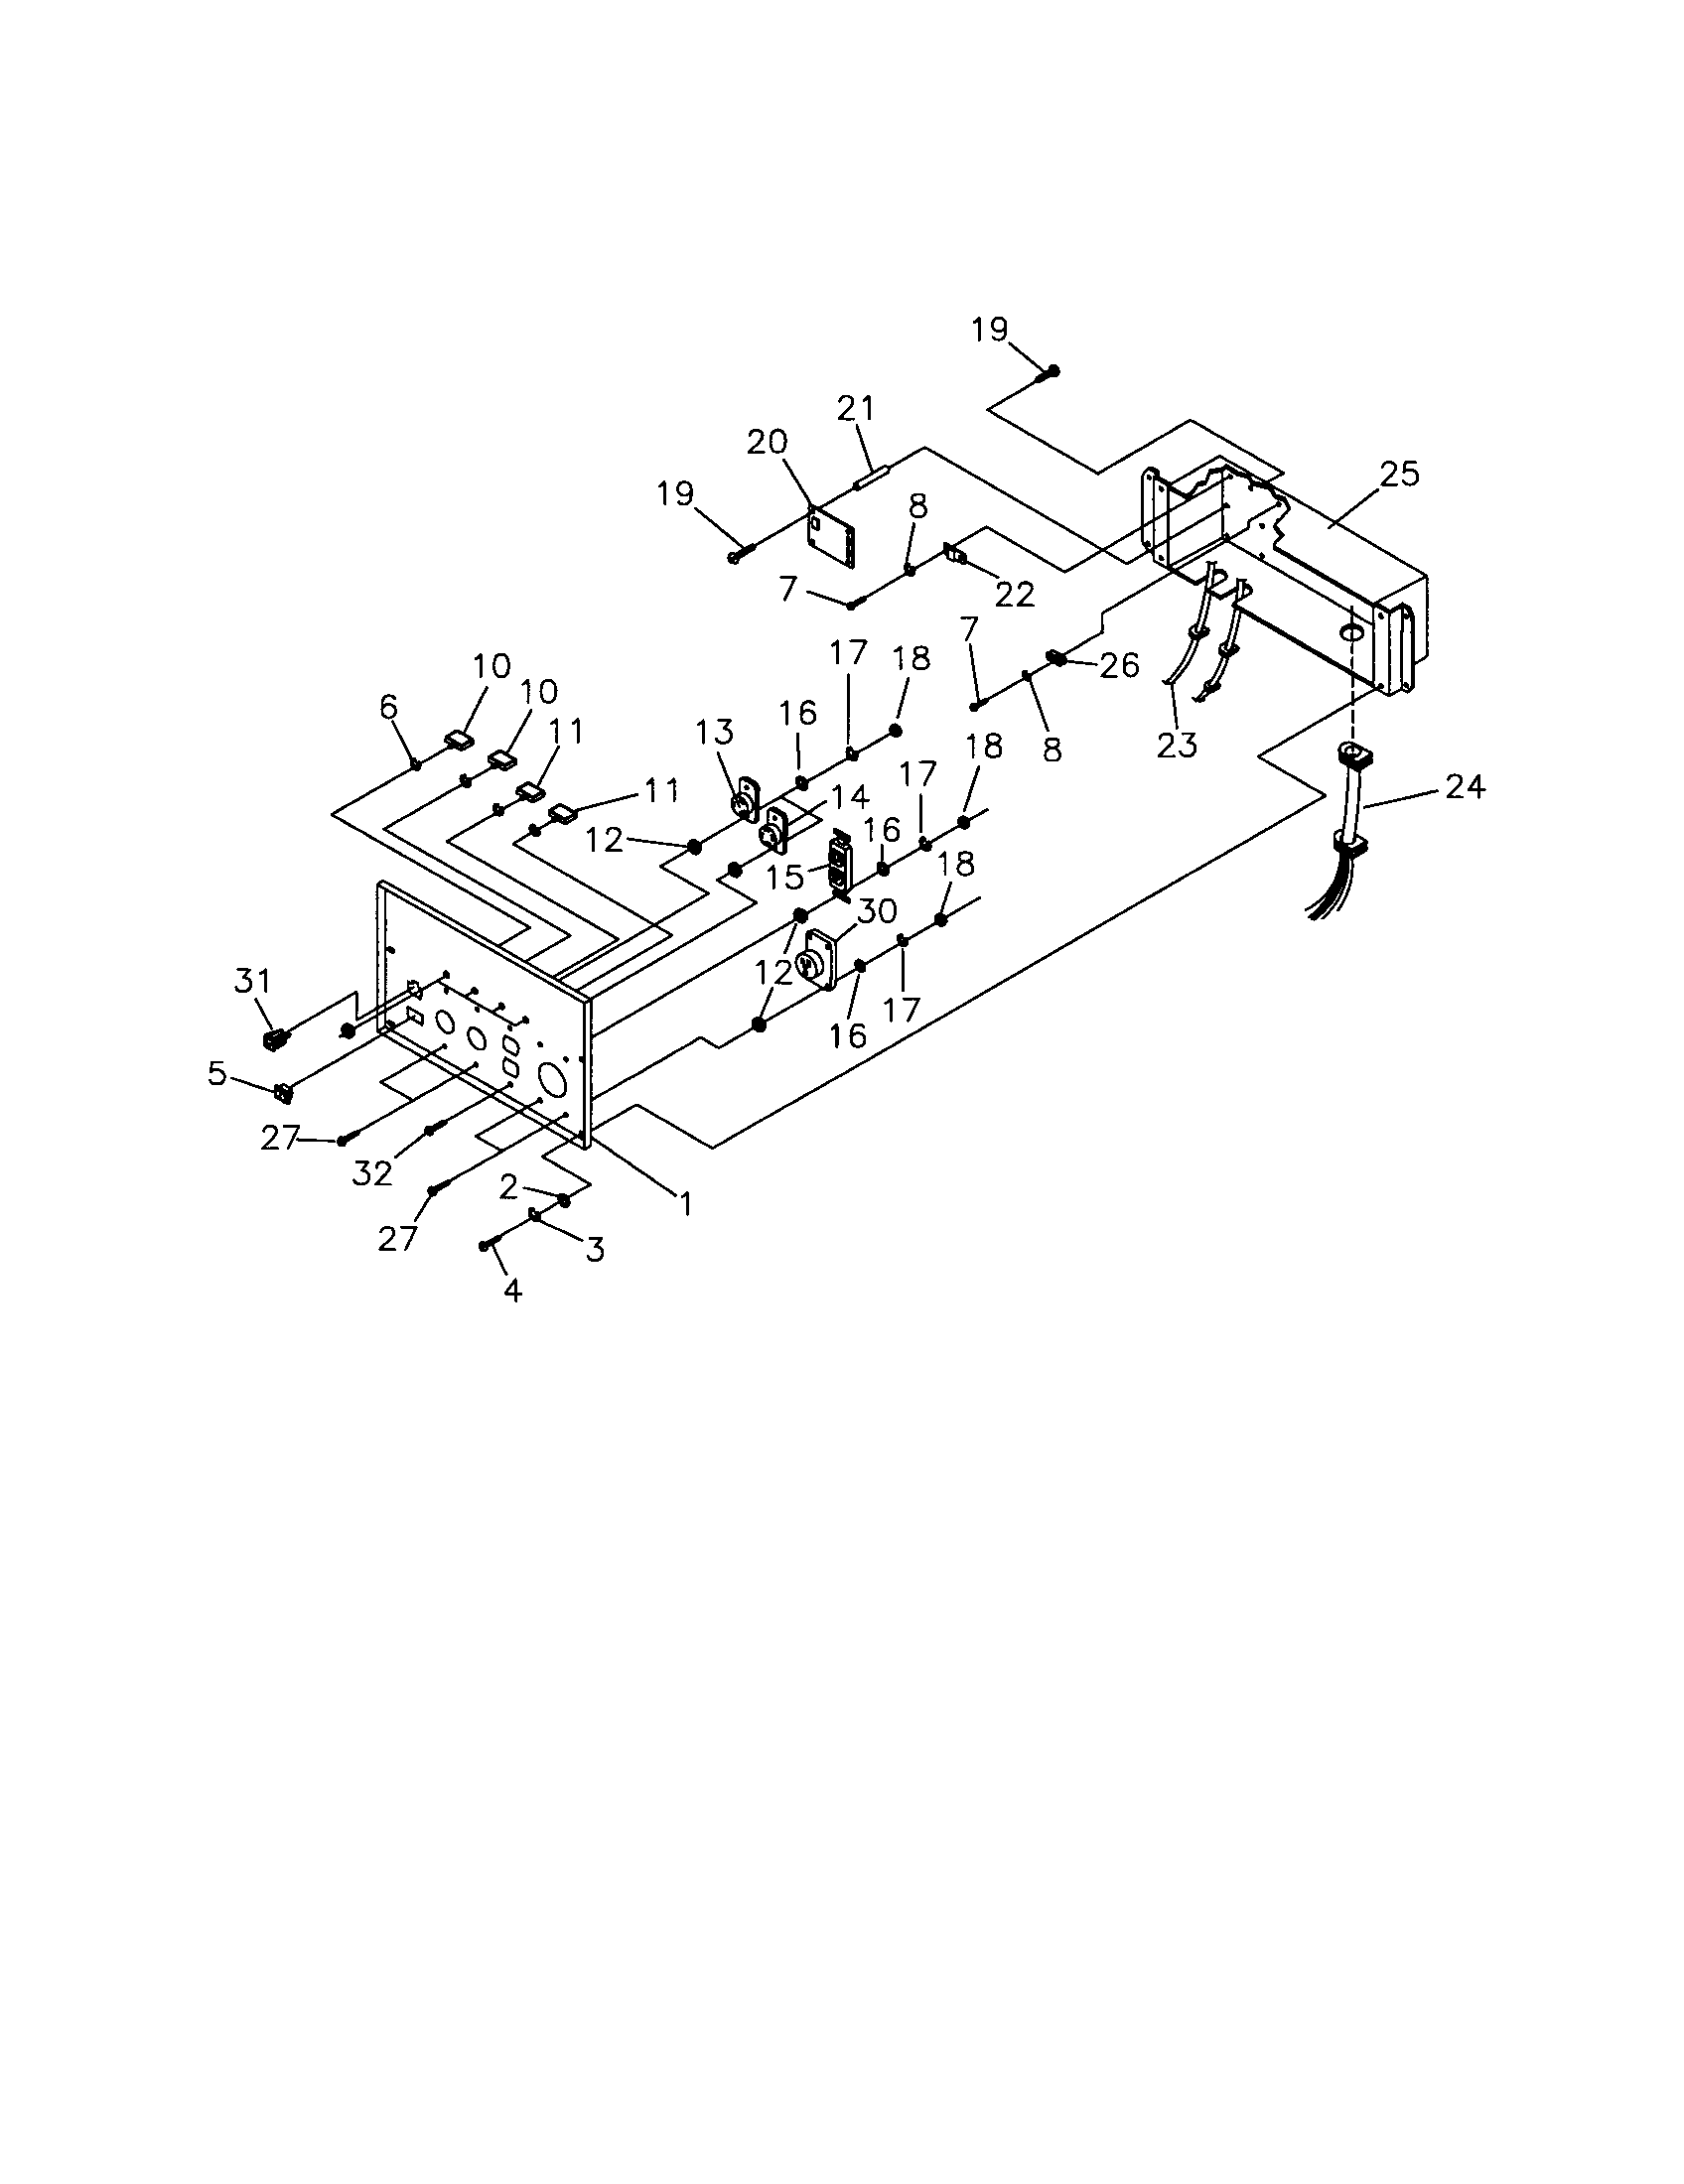 CONTROL PANEL Diagram & Parts List for Model 580327181